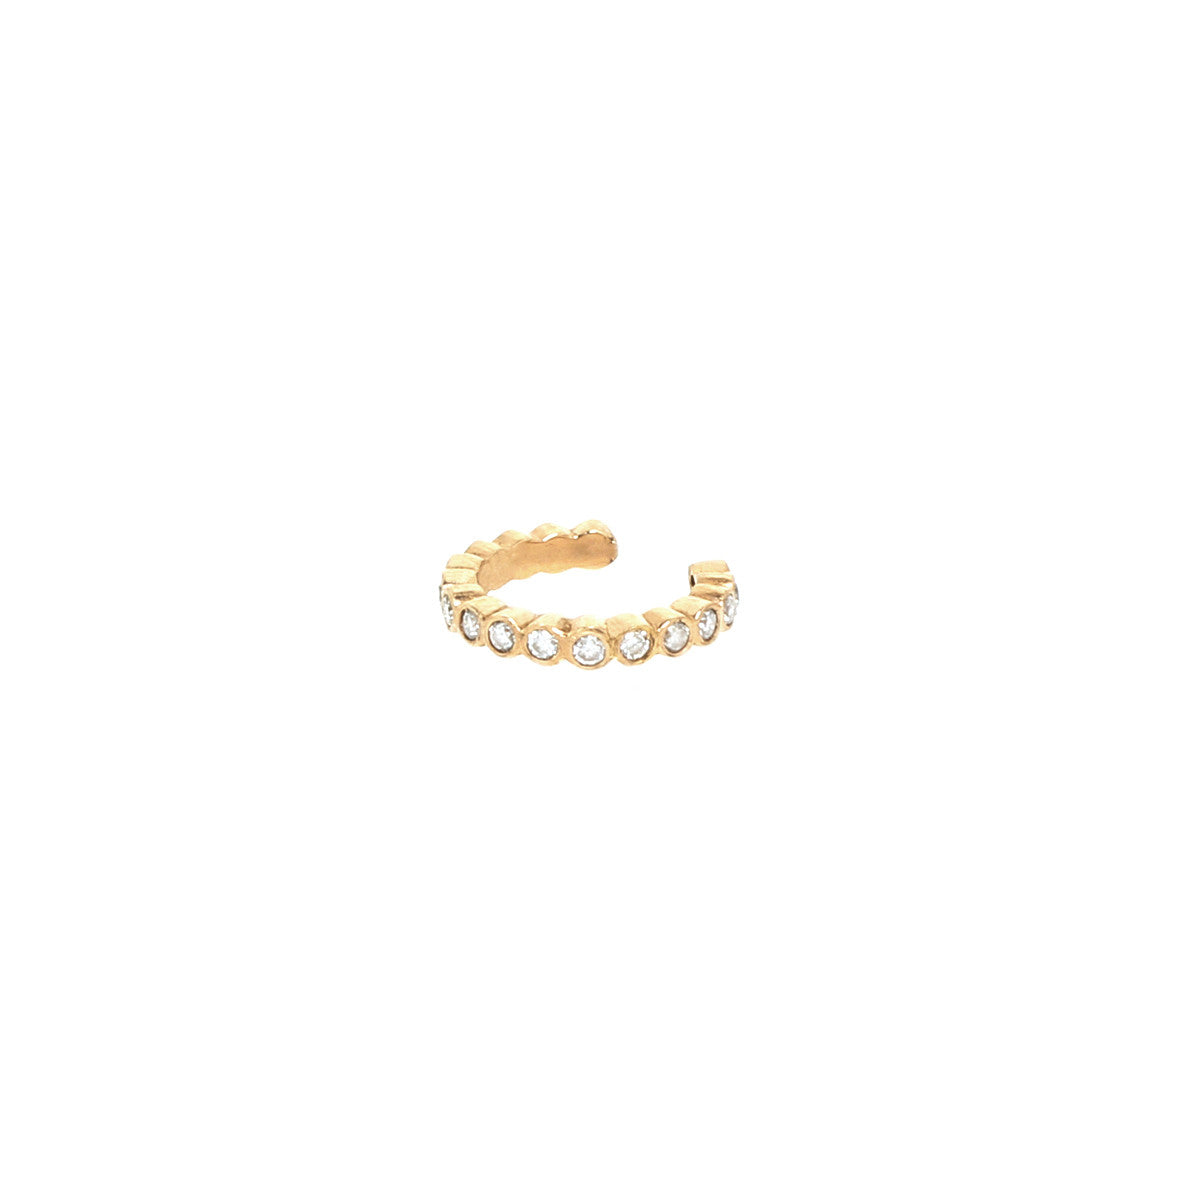 Zoë Chicco 14kt Yellow Gold White Diamond Bezel Set Ear Cuff